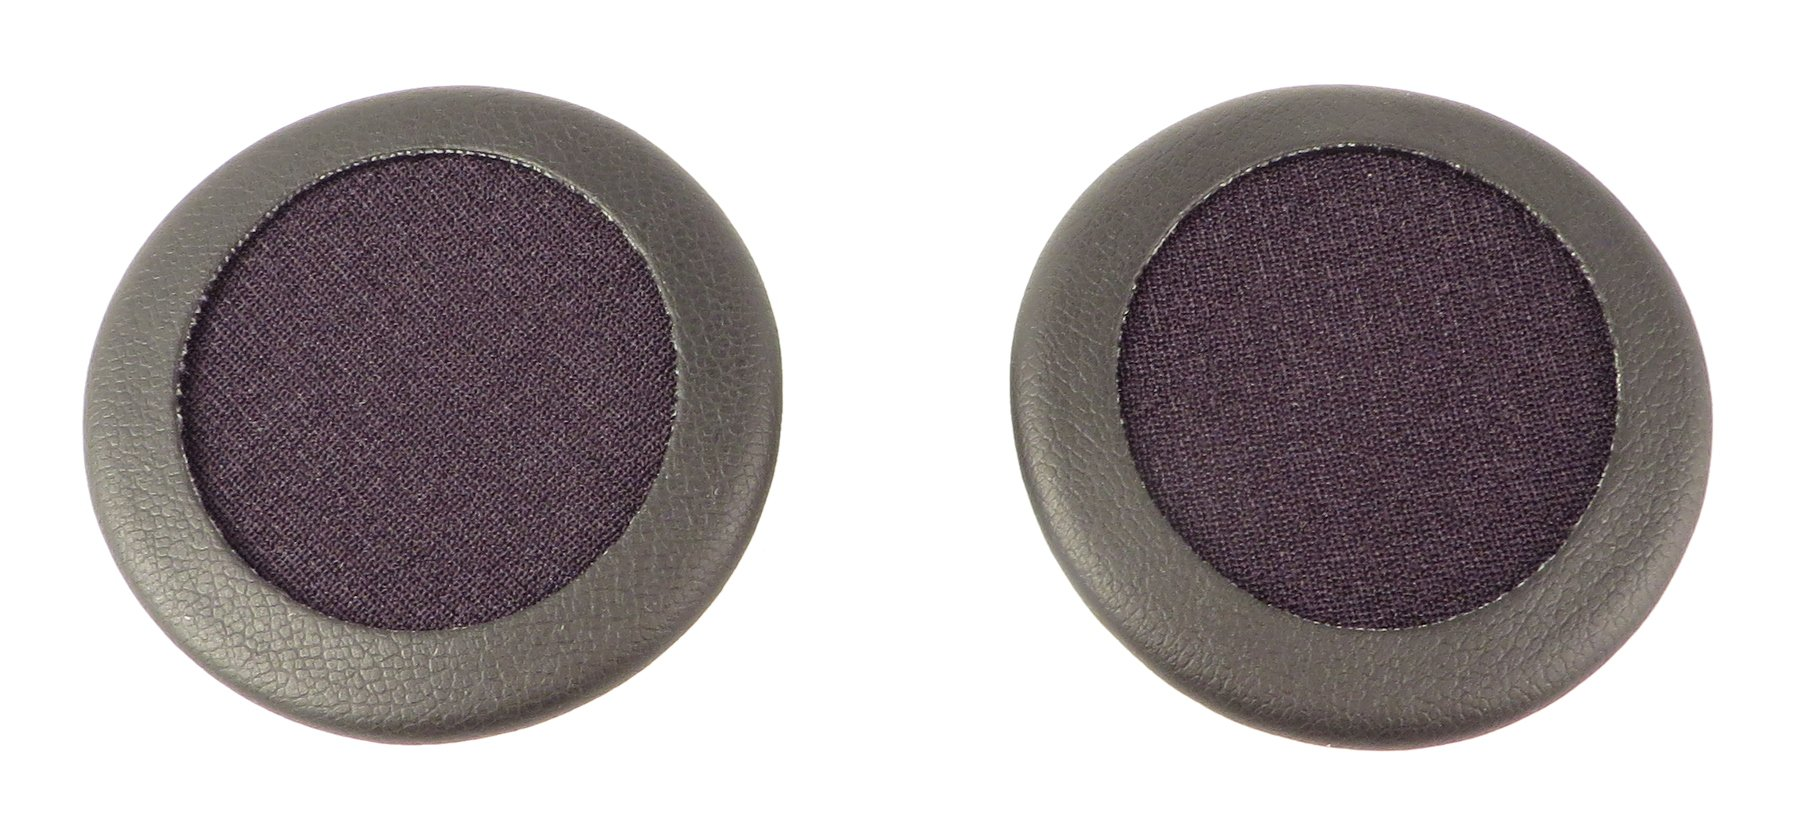 Pair of Earpads for PXC300